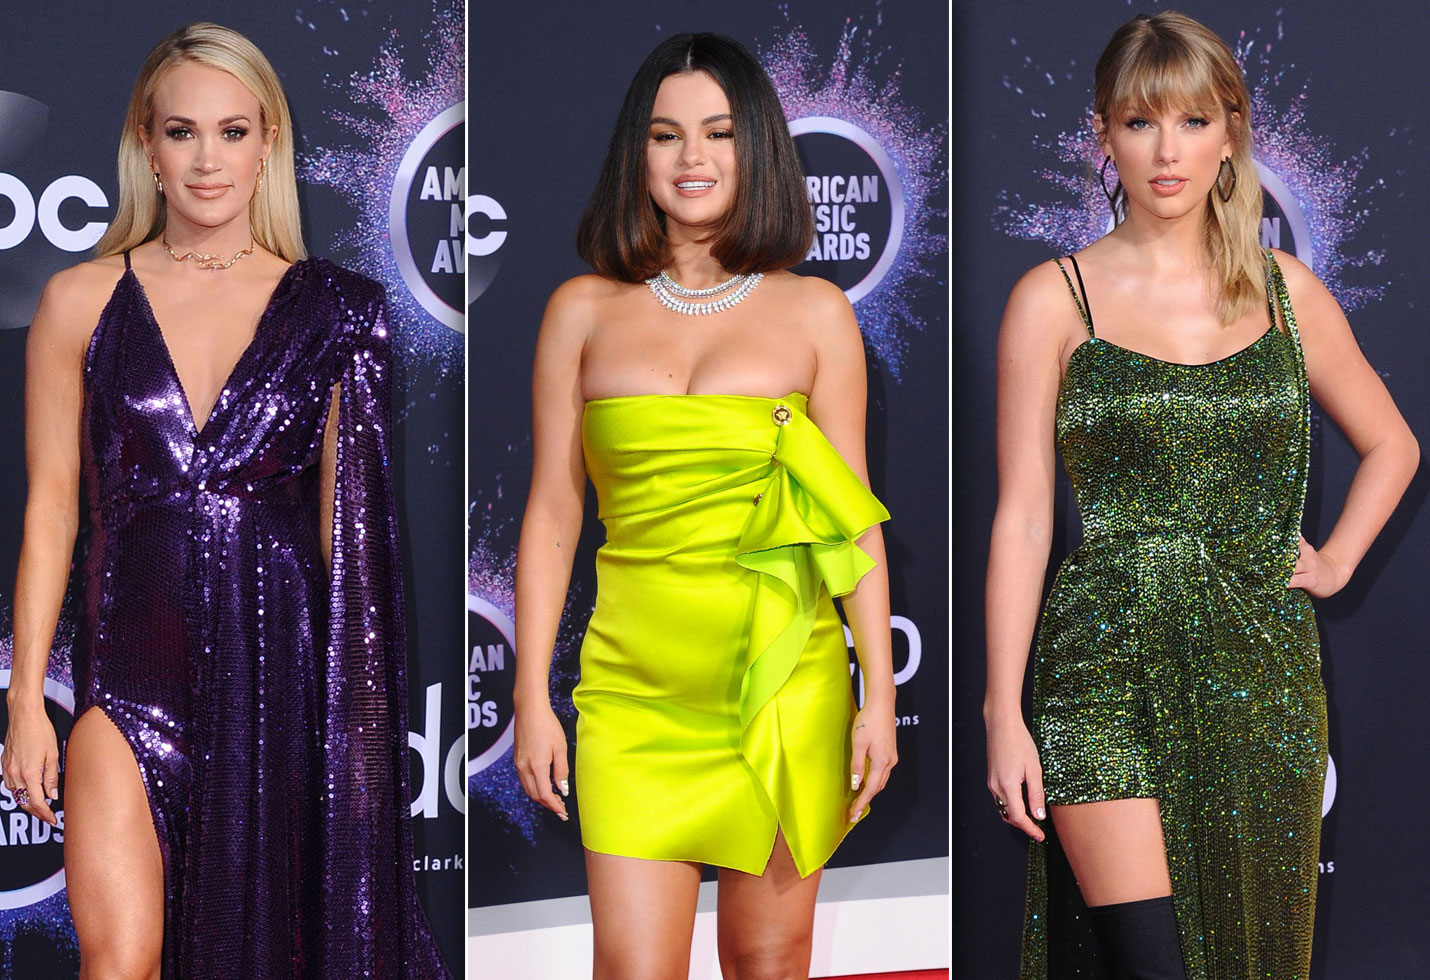 Carrie Underwood, Selena Gomez and Taylor Swift